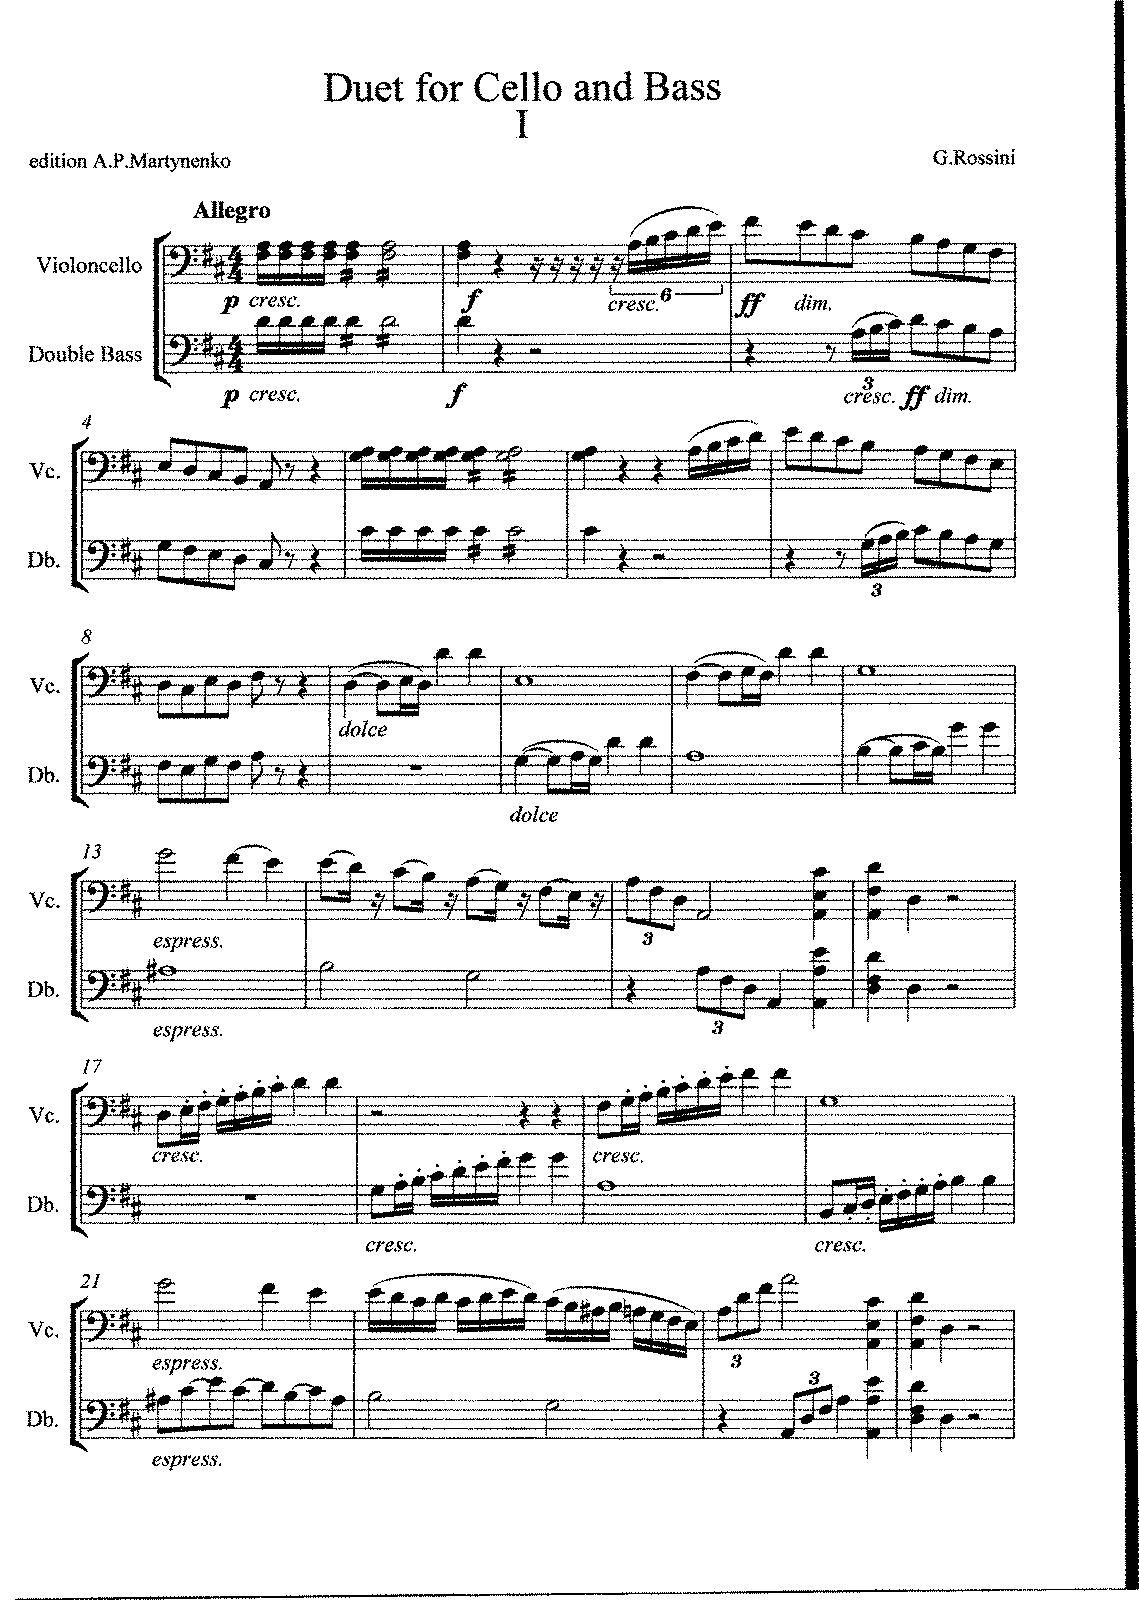 PMLP74382-G.Rossini-Duet for Cello and Bass.pdf